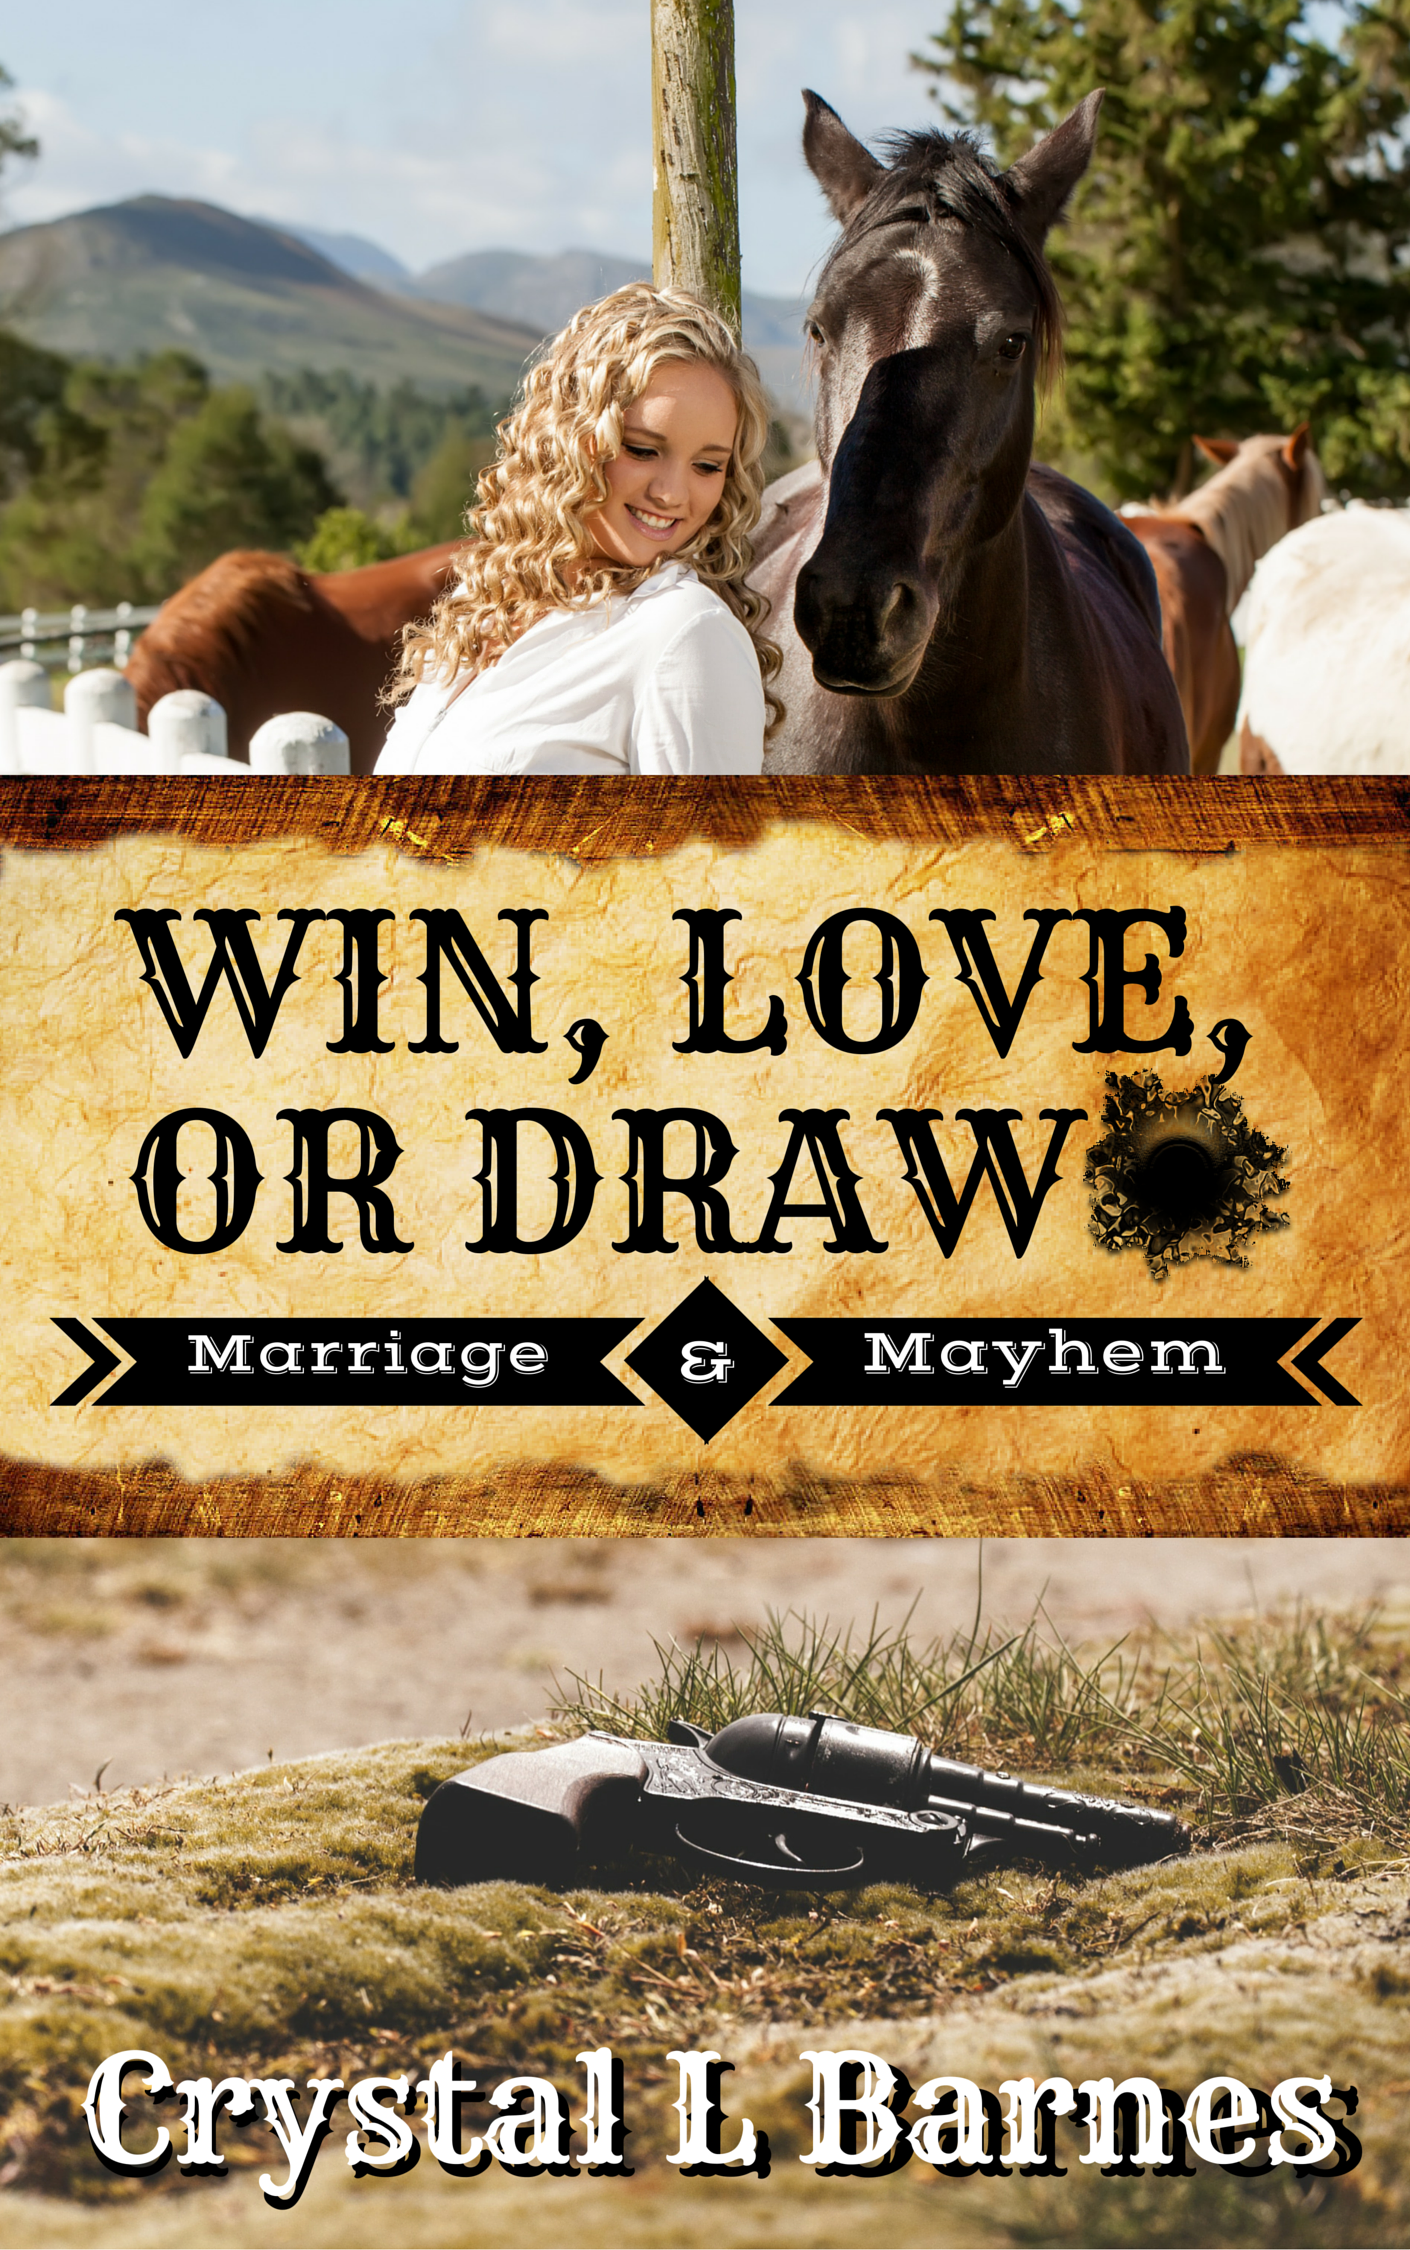 Win, Love, or Draw